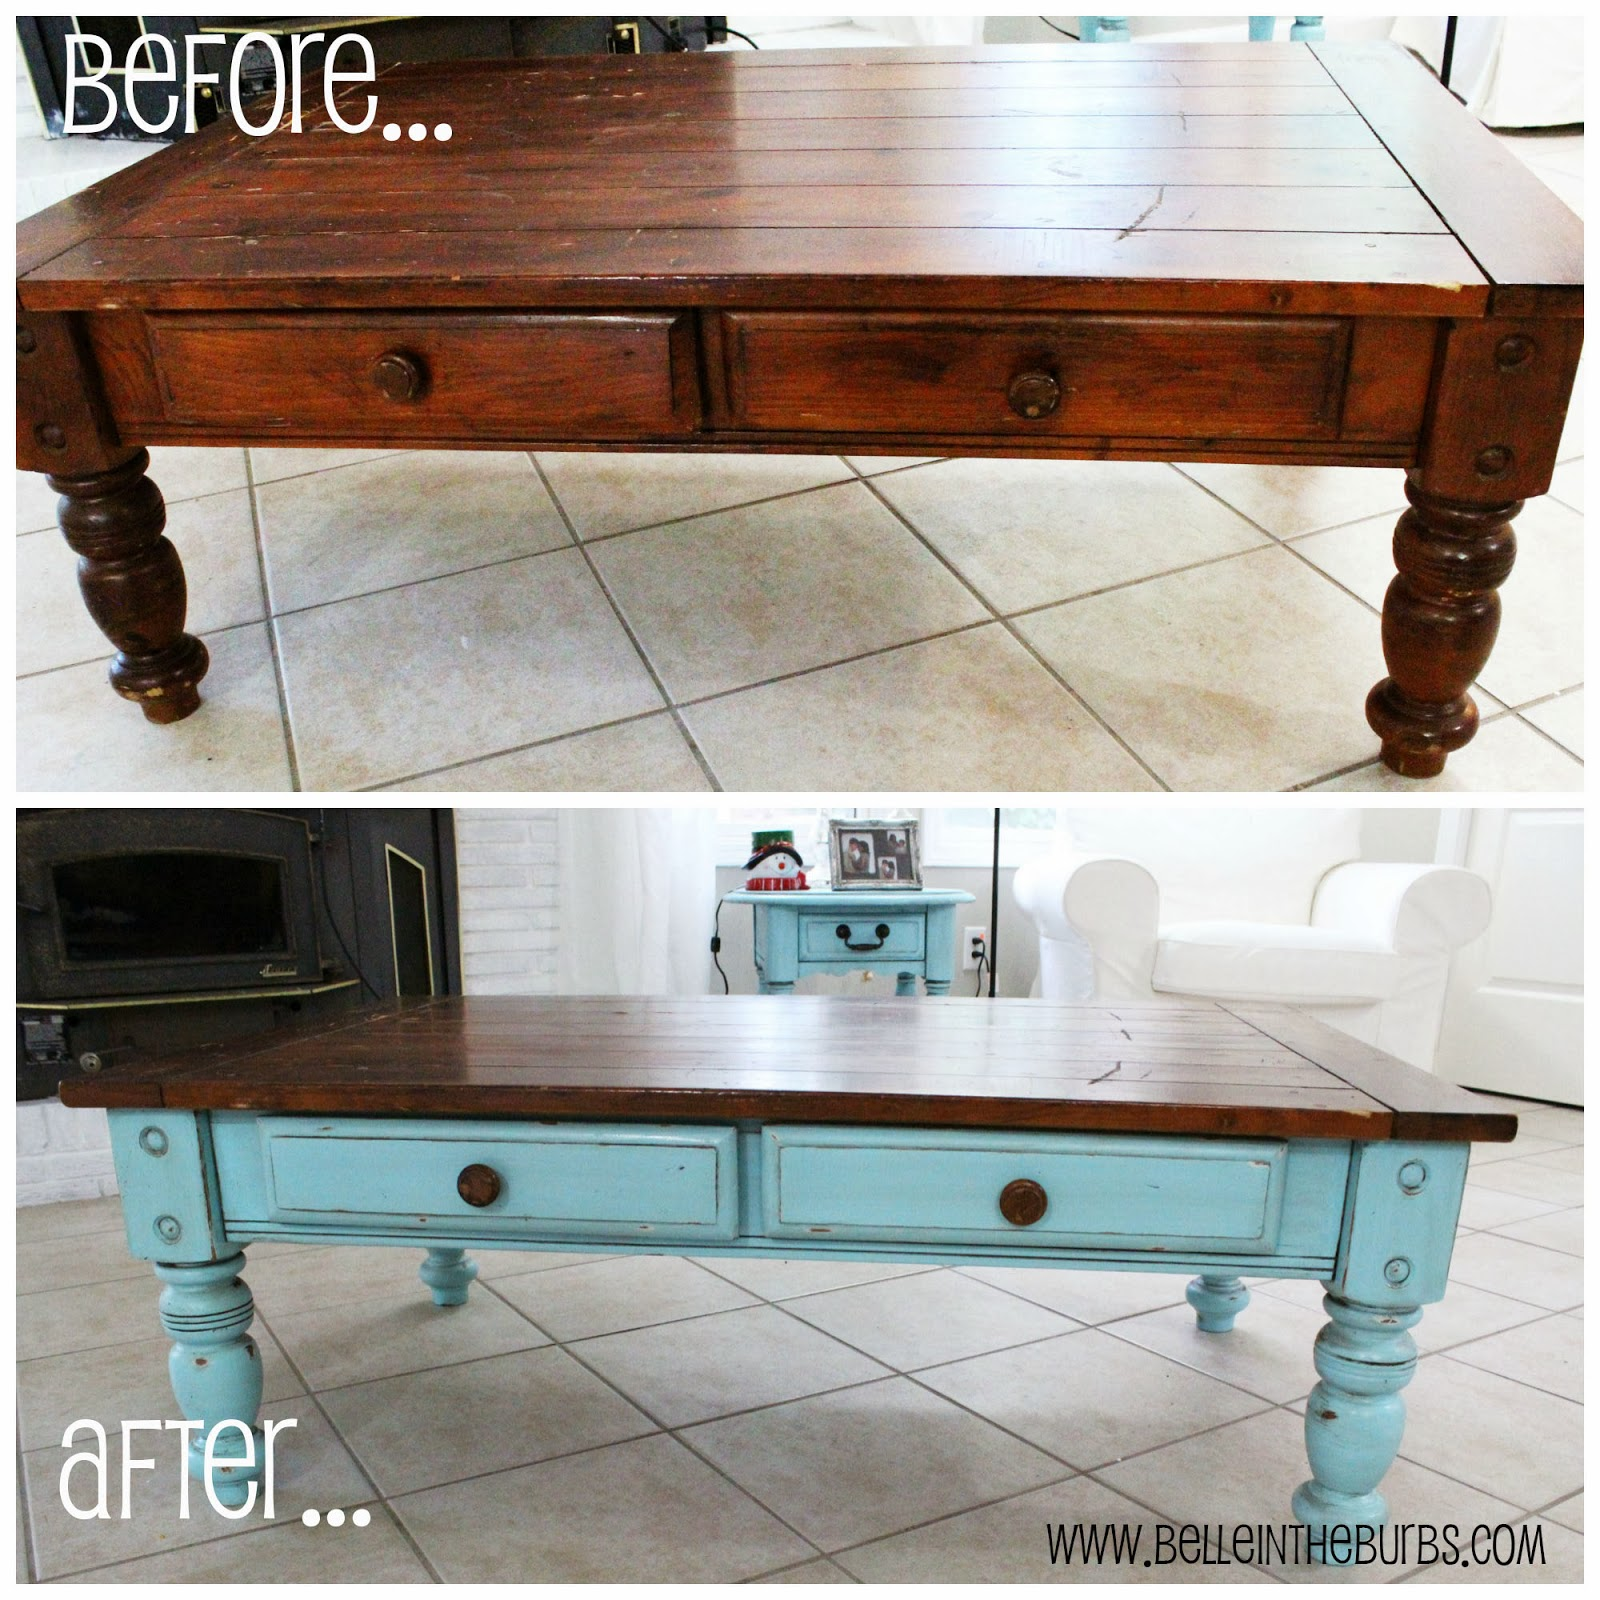 Belle in the Burbs Two Toned Coffee Table Tutorial